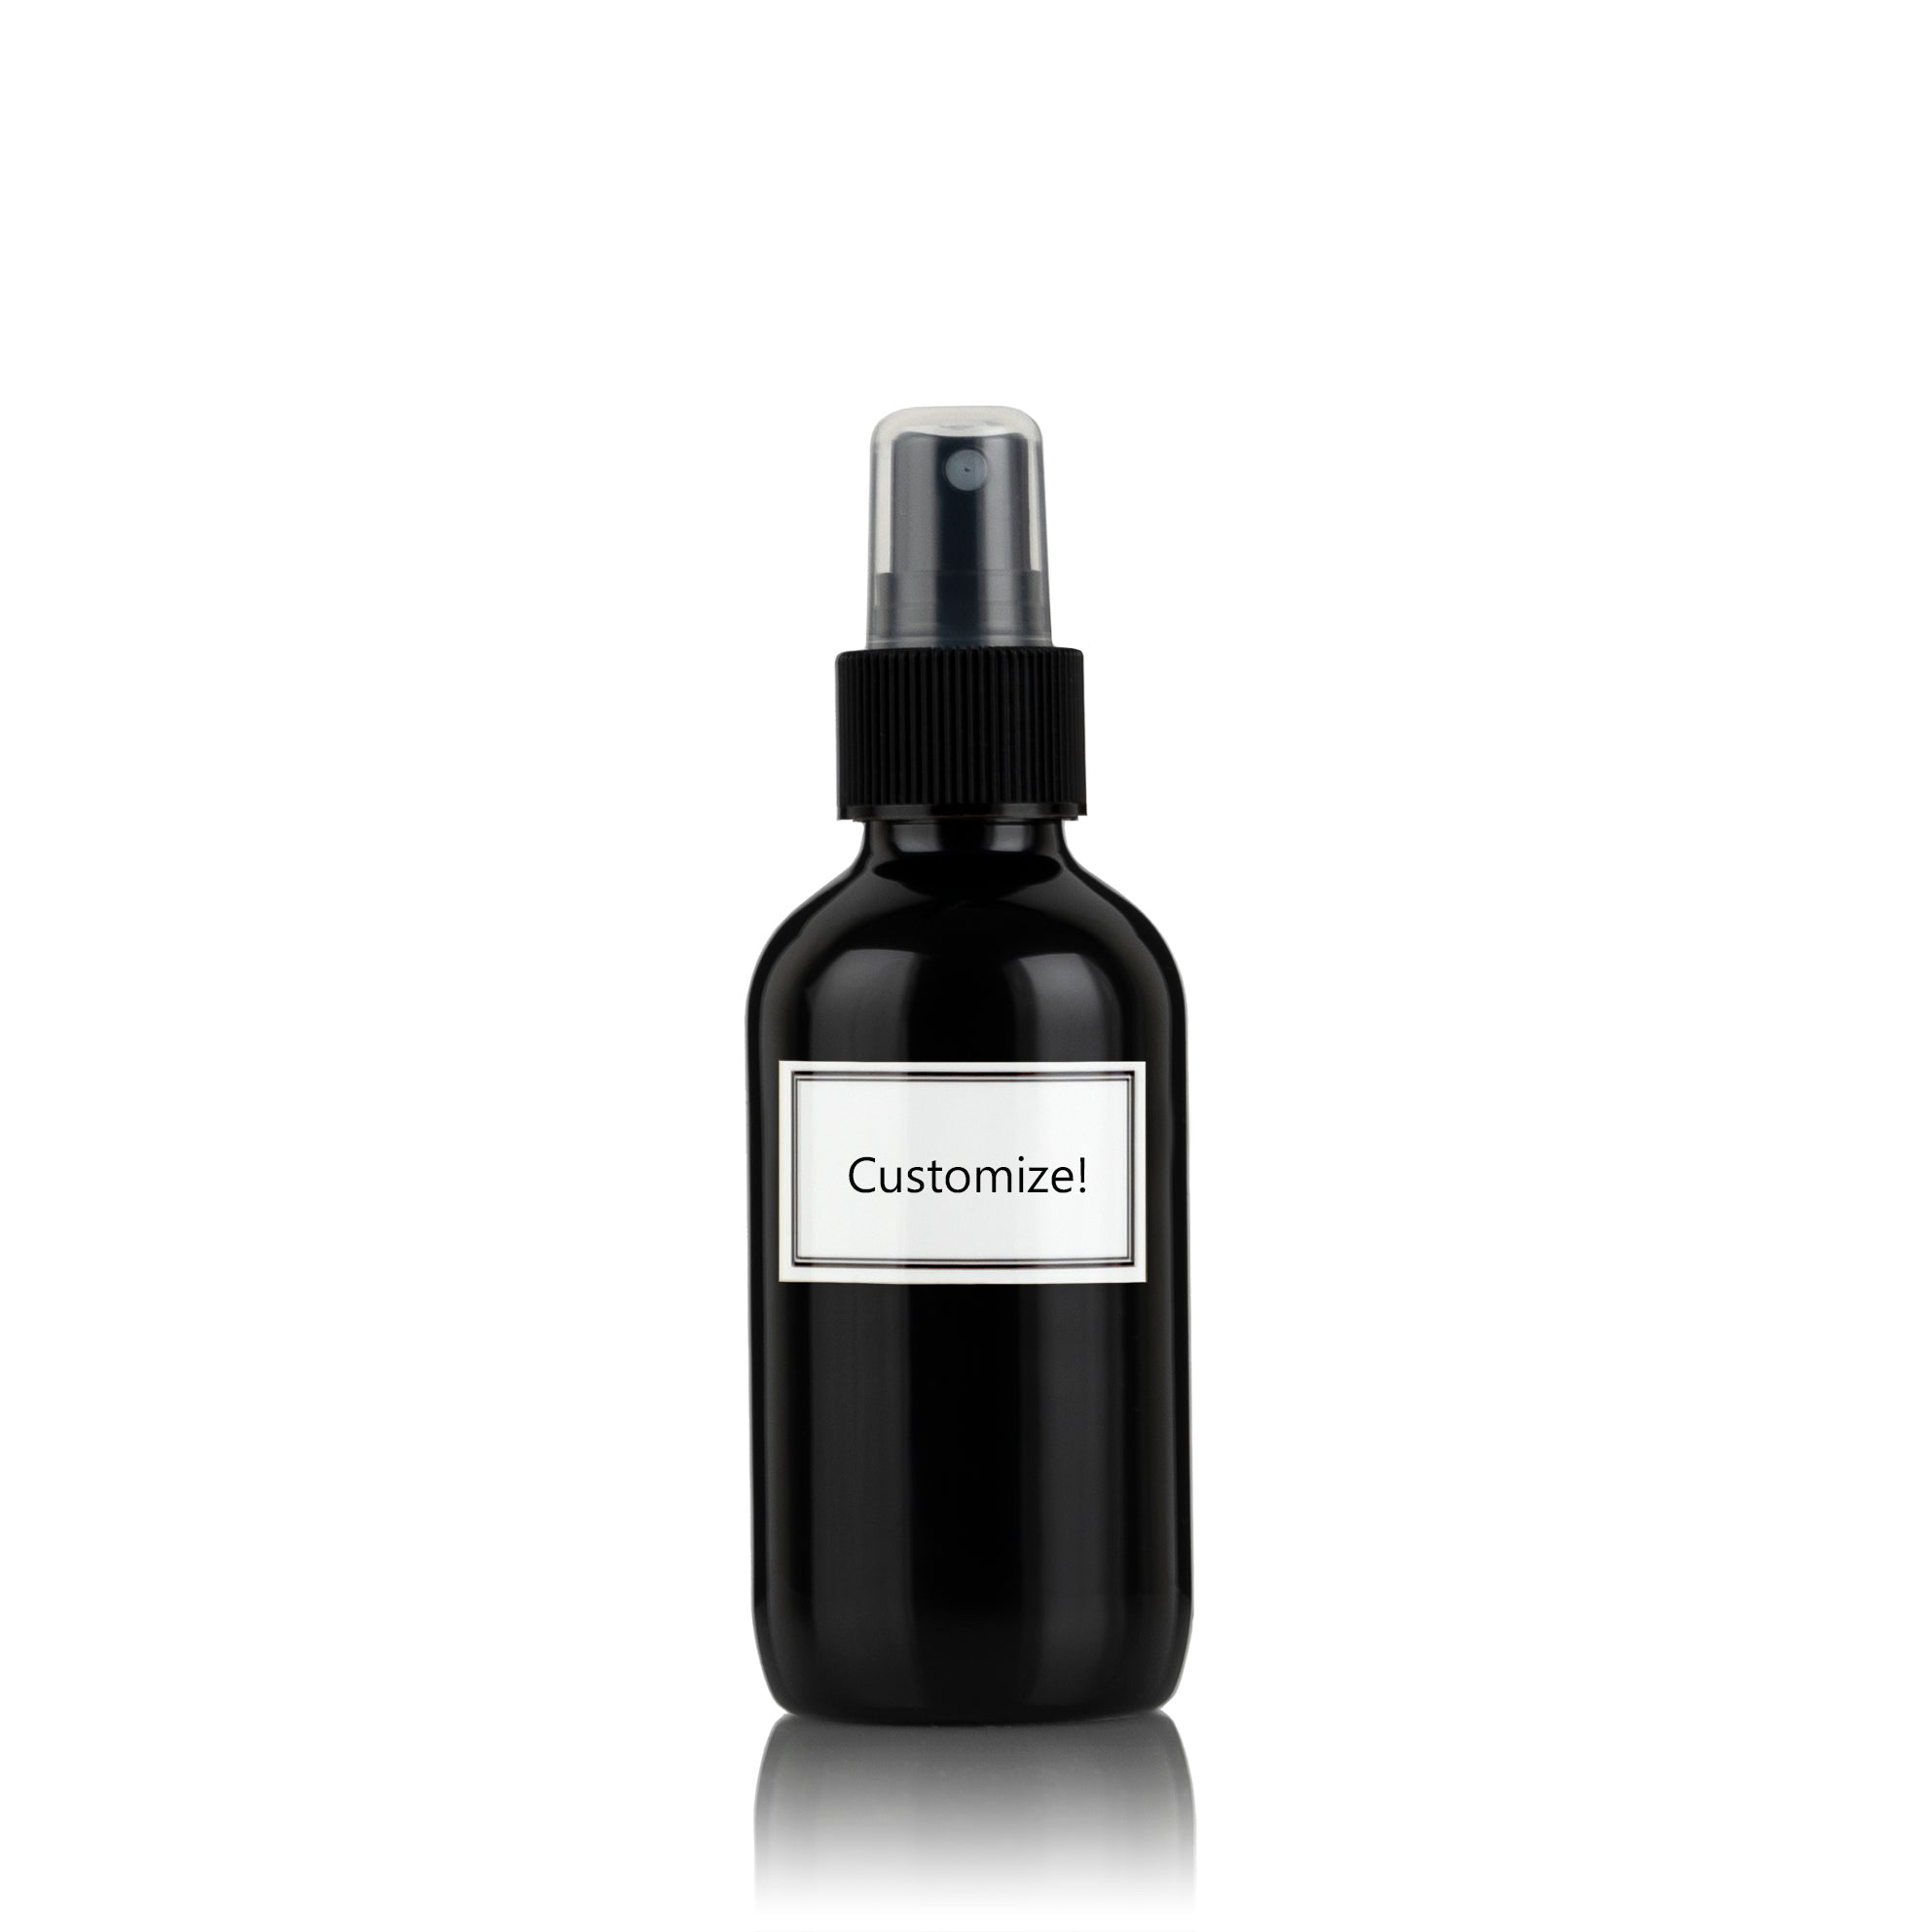 Metallic Black Powder Coated Glass Small 4 oz Spray Bottle